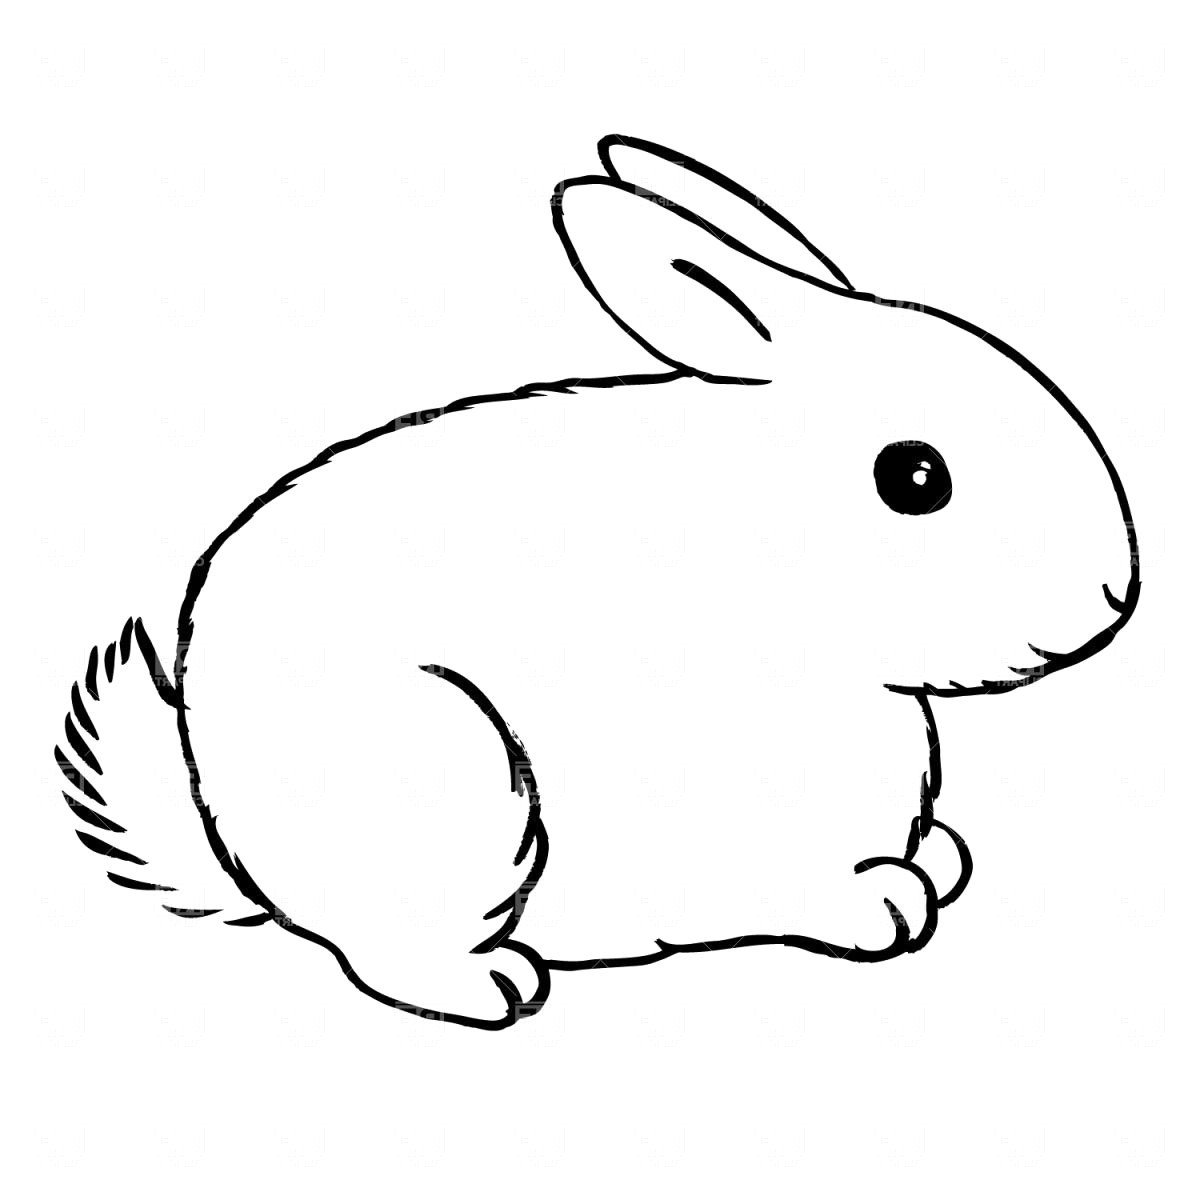 Rabbit clipart black and white png freeuse download Black and white rabbit clipart 1 » Clipart Portal png freeuse download